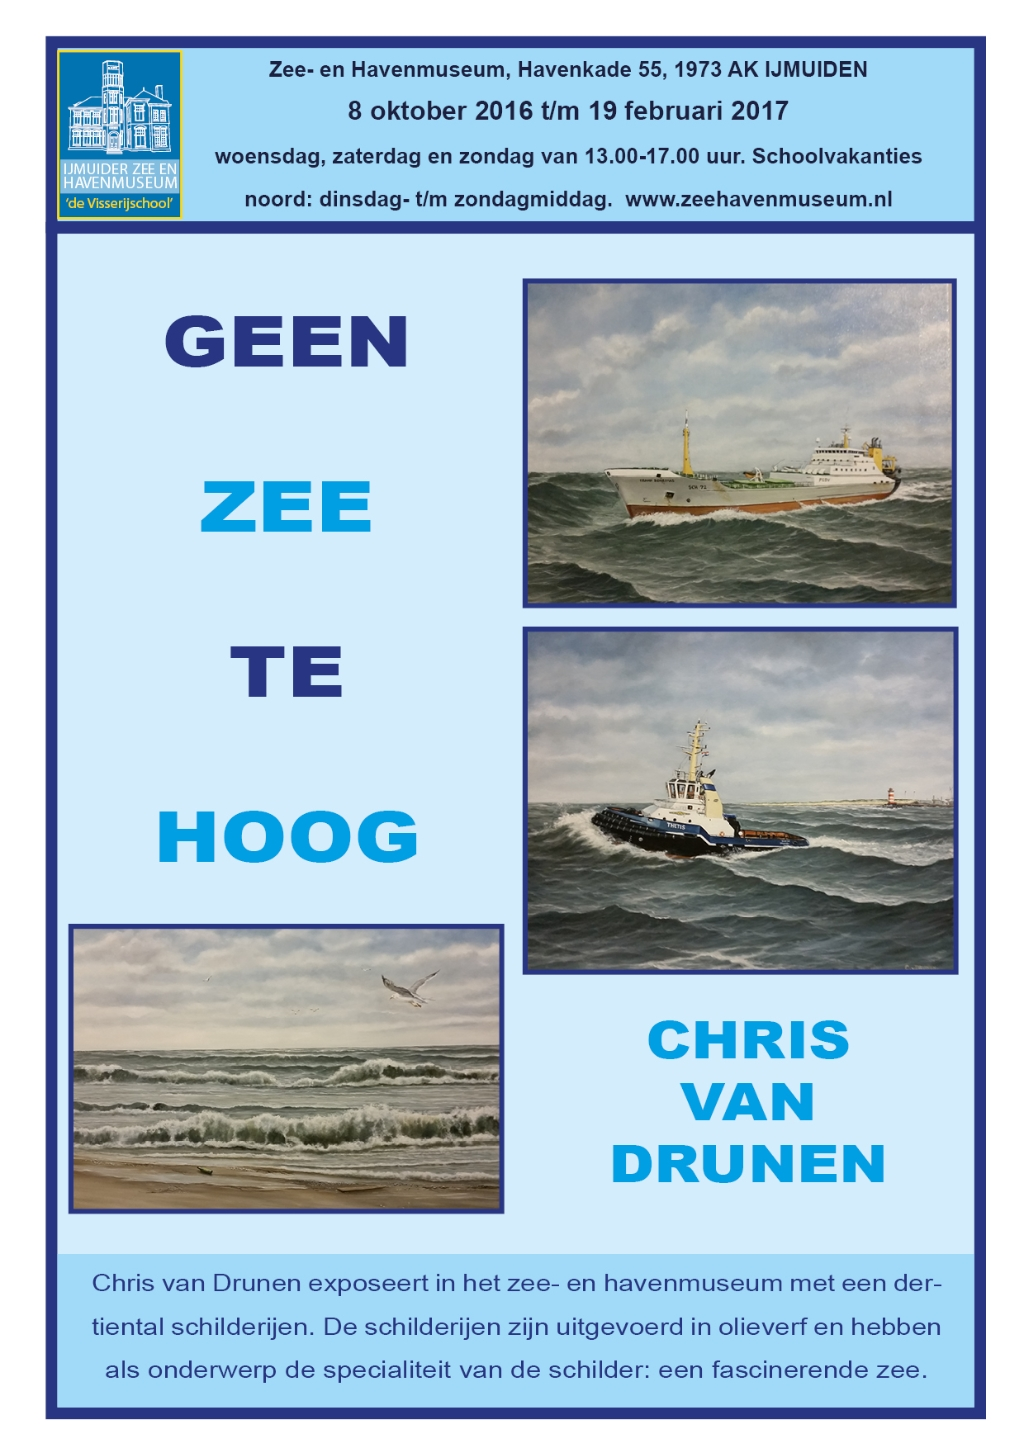 poster chris van drunen.jpg